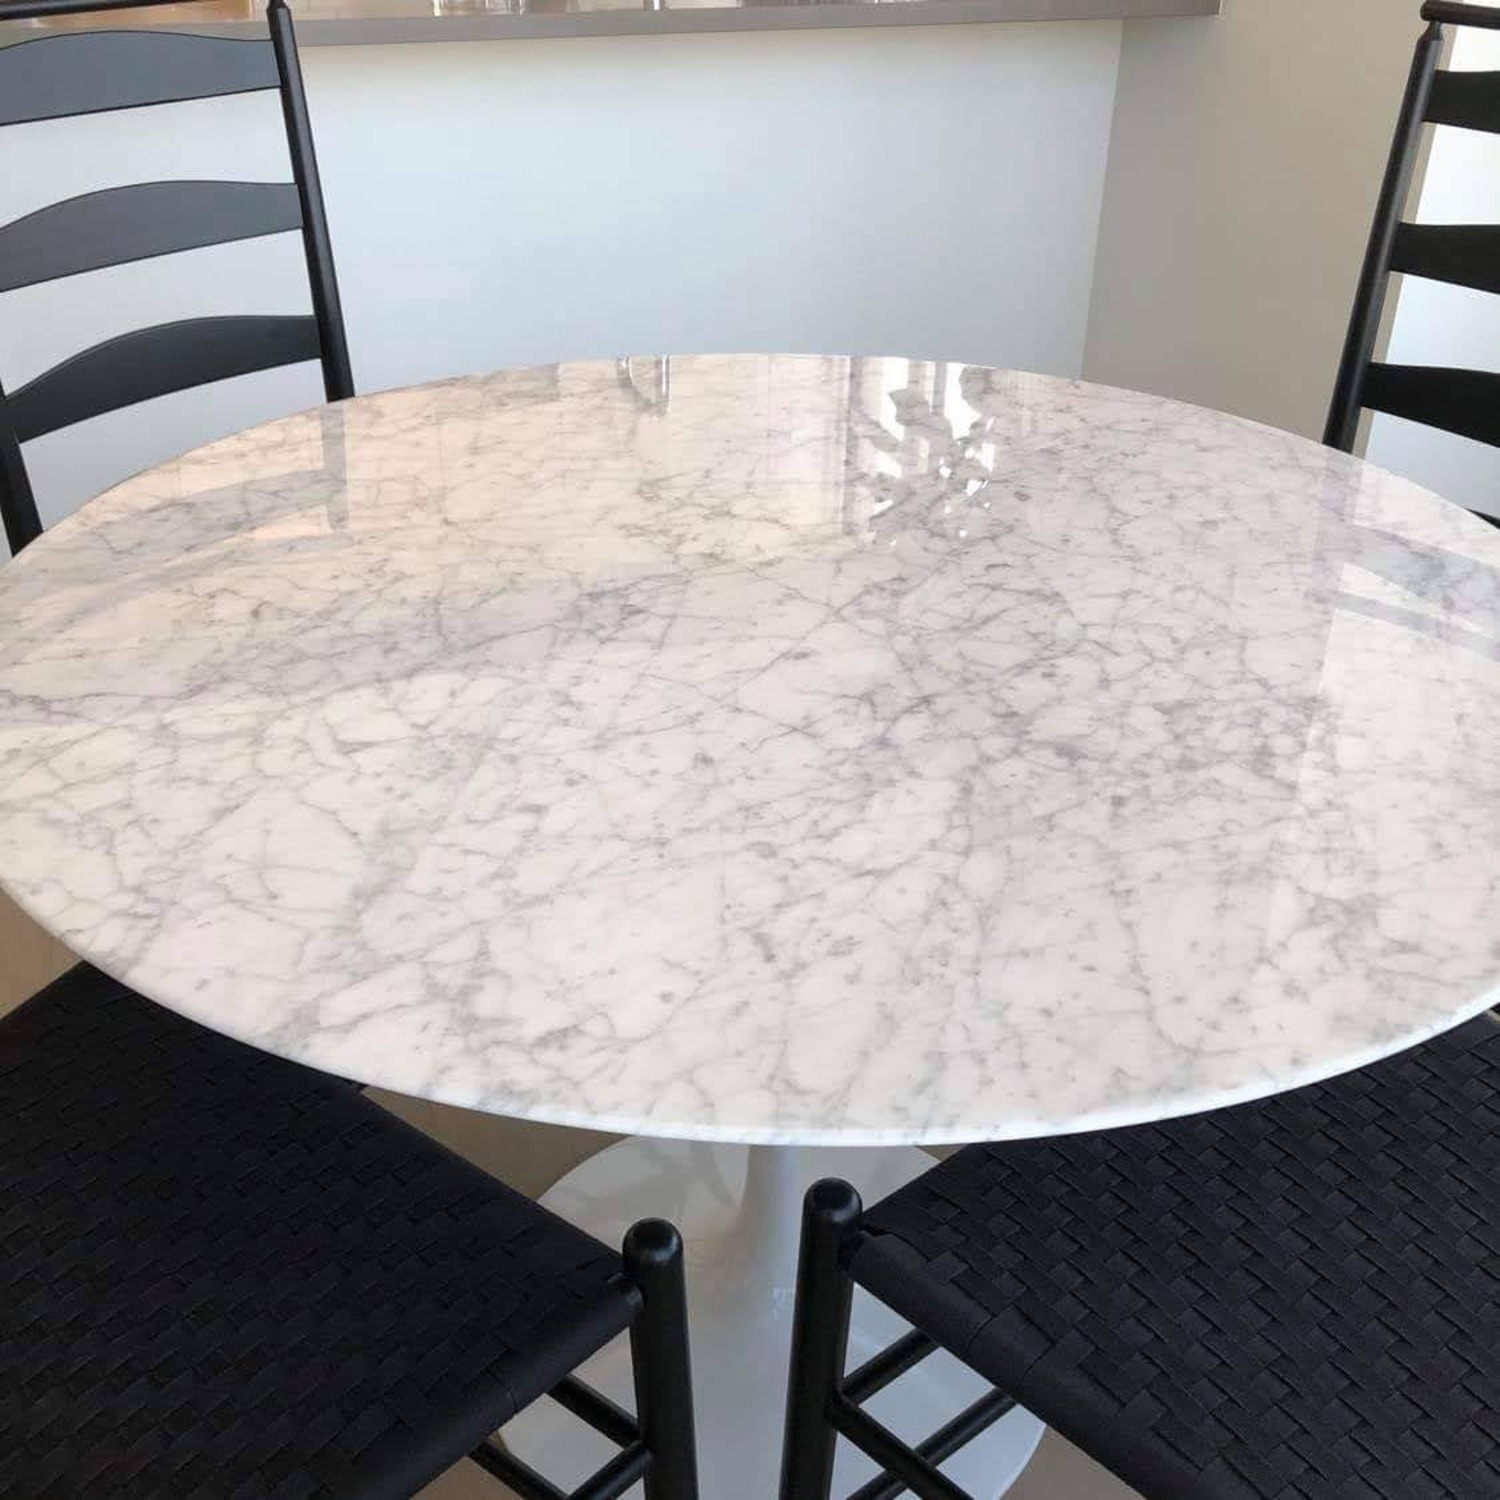 Knoll Saarinen Dining Table with Carrara Marble Top - image-7